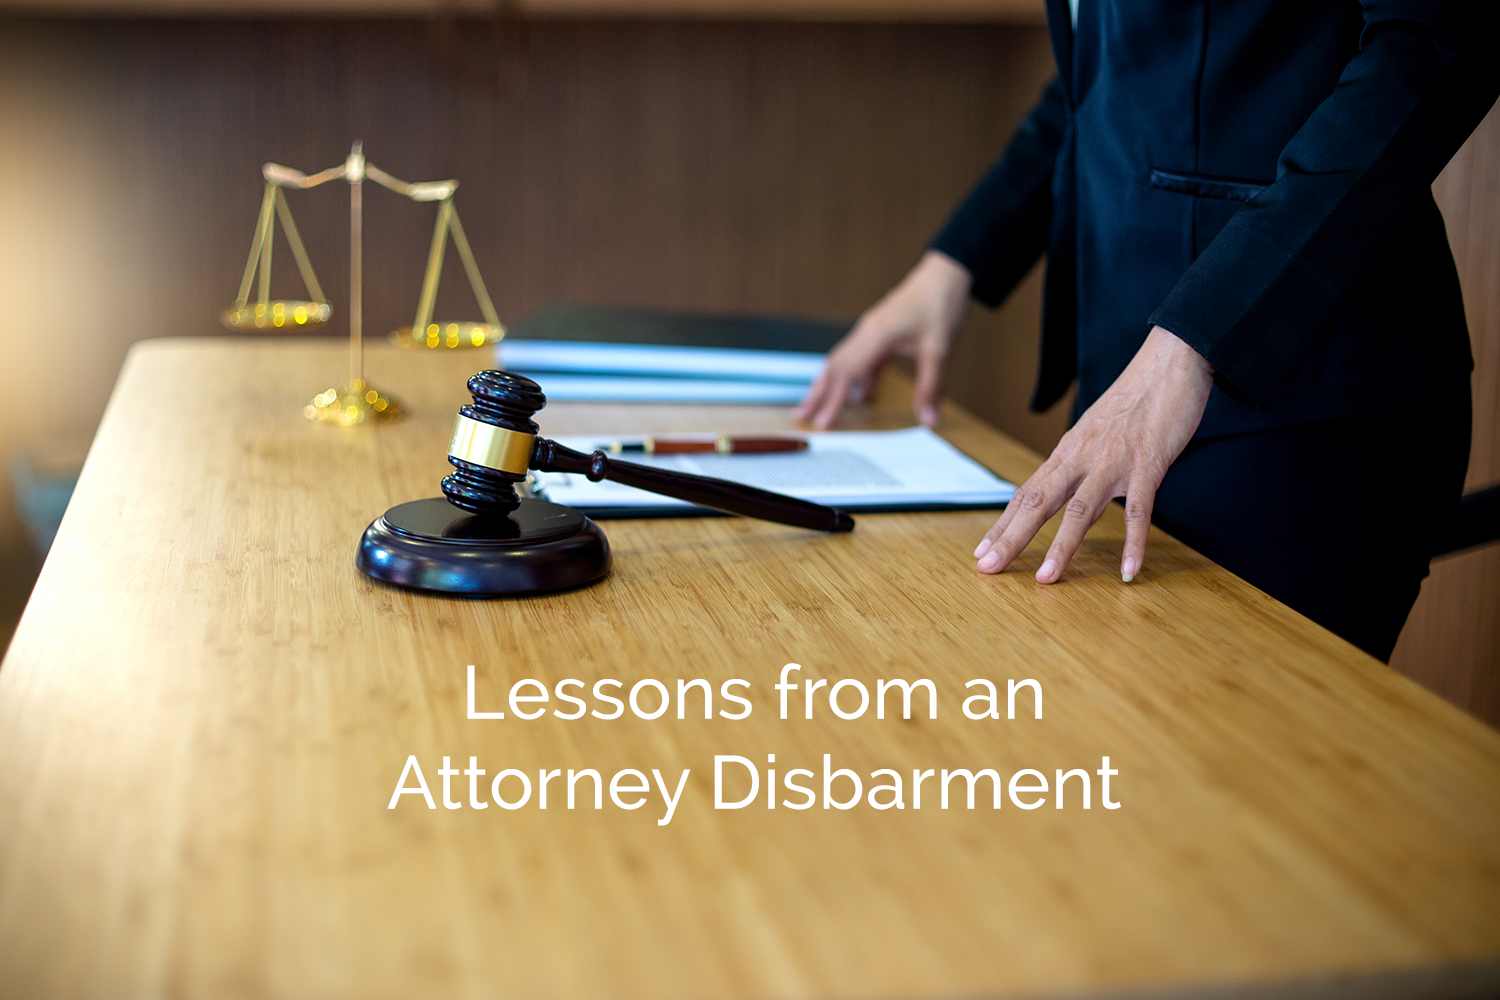 Lessons from an Attorney Disbarment